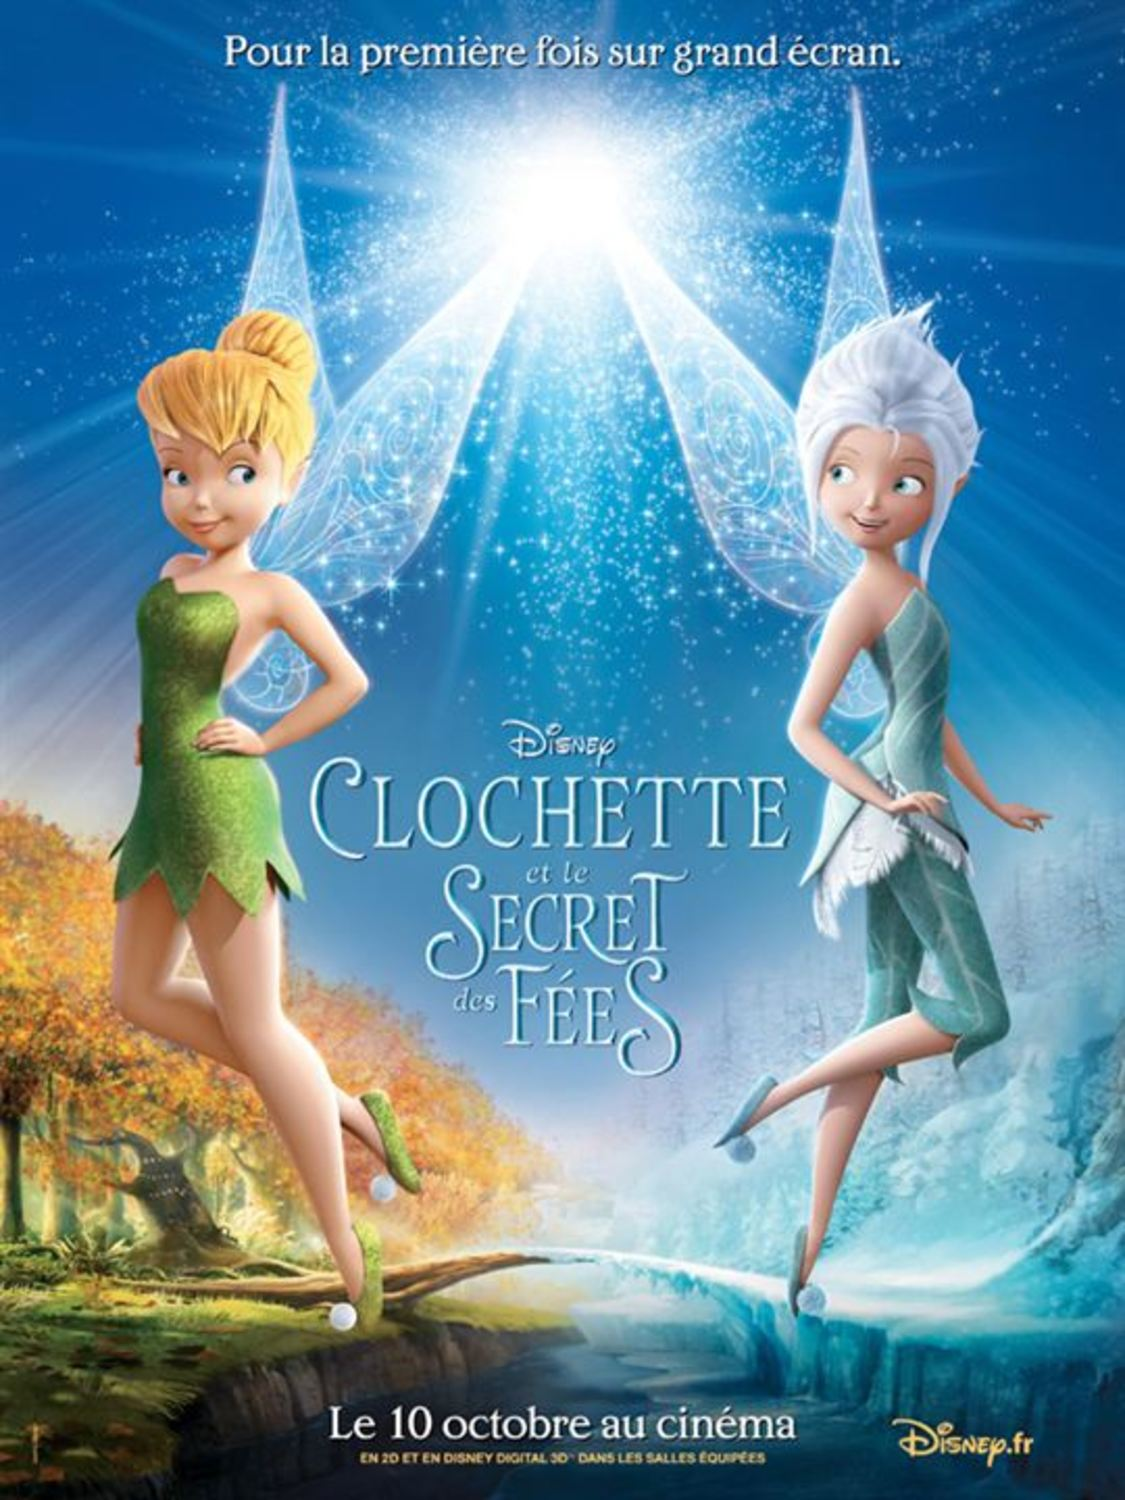 affiche poster clochette secret fées wings disney